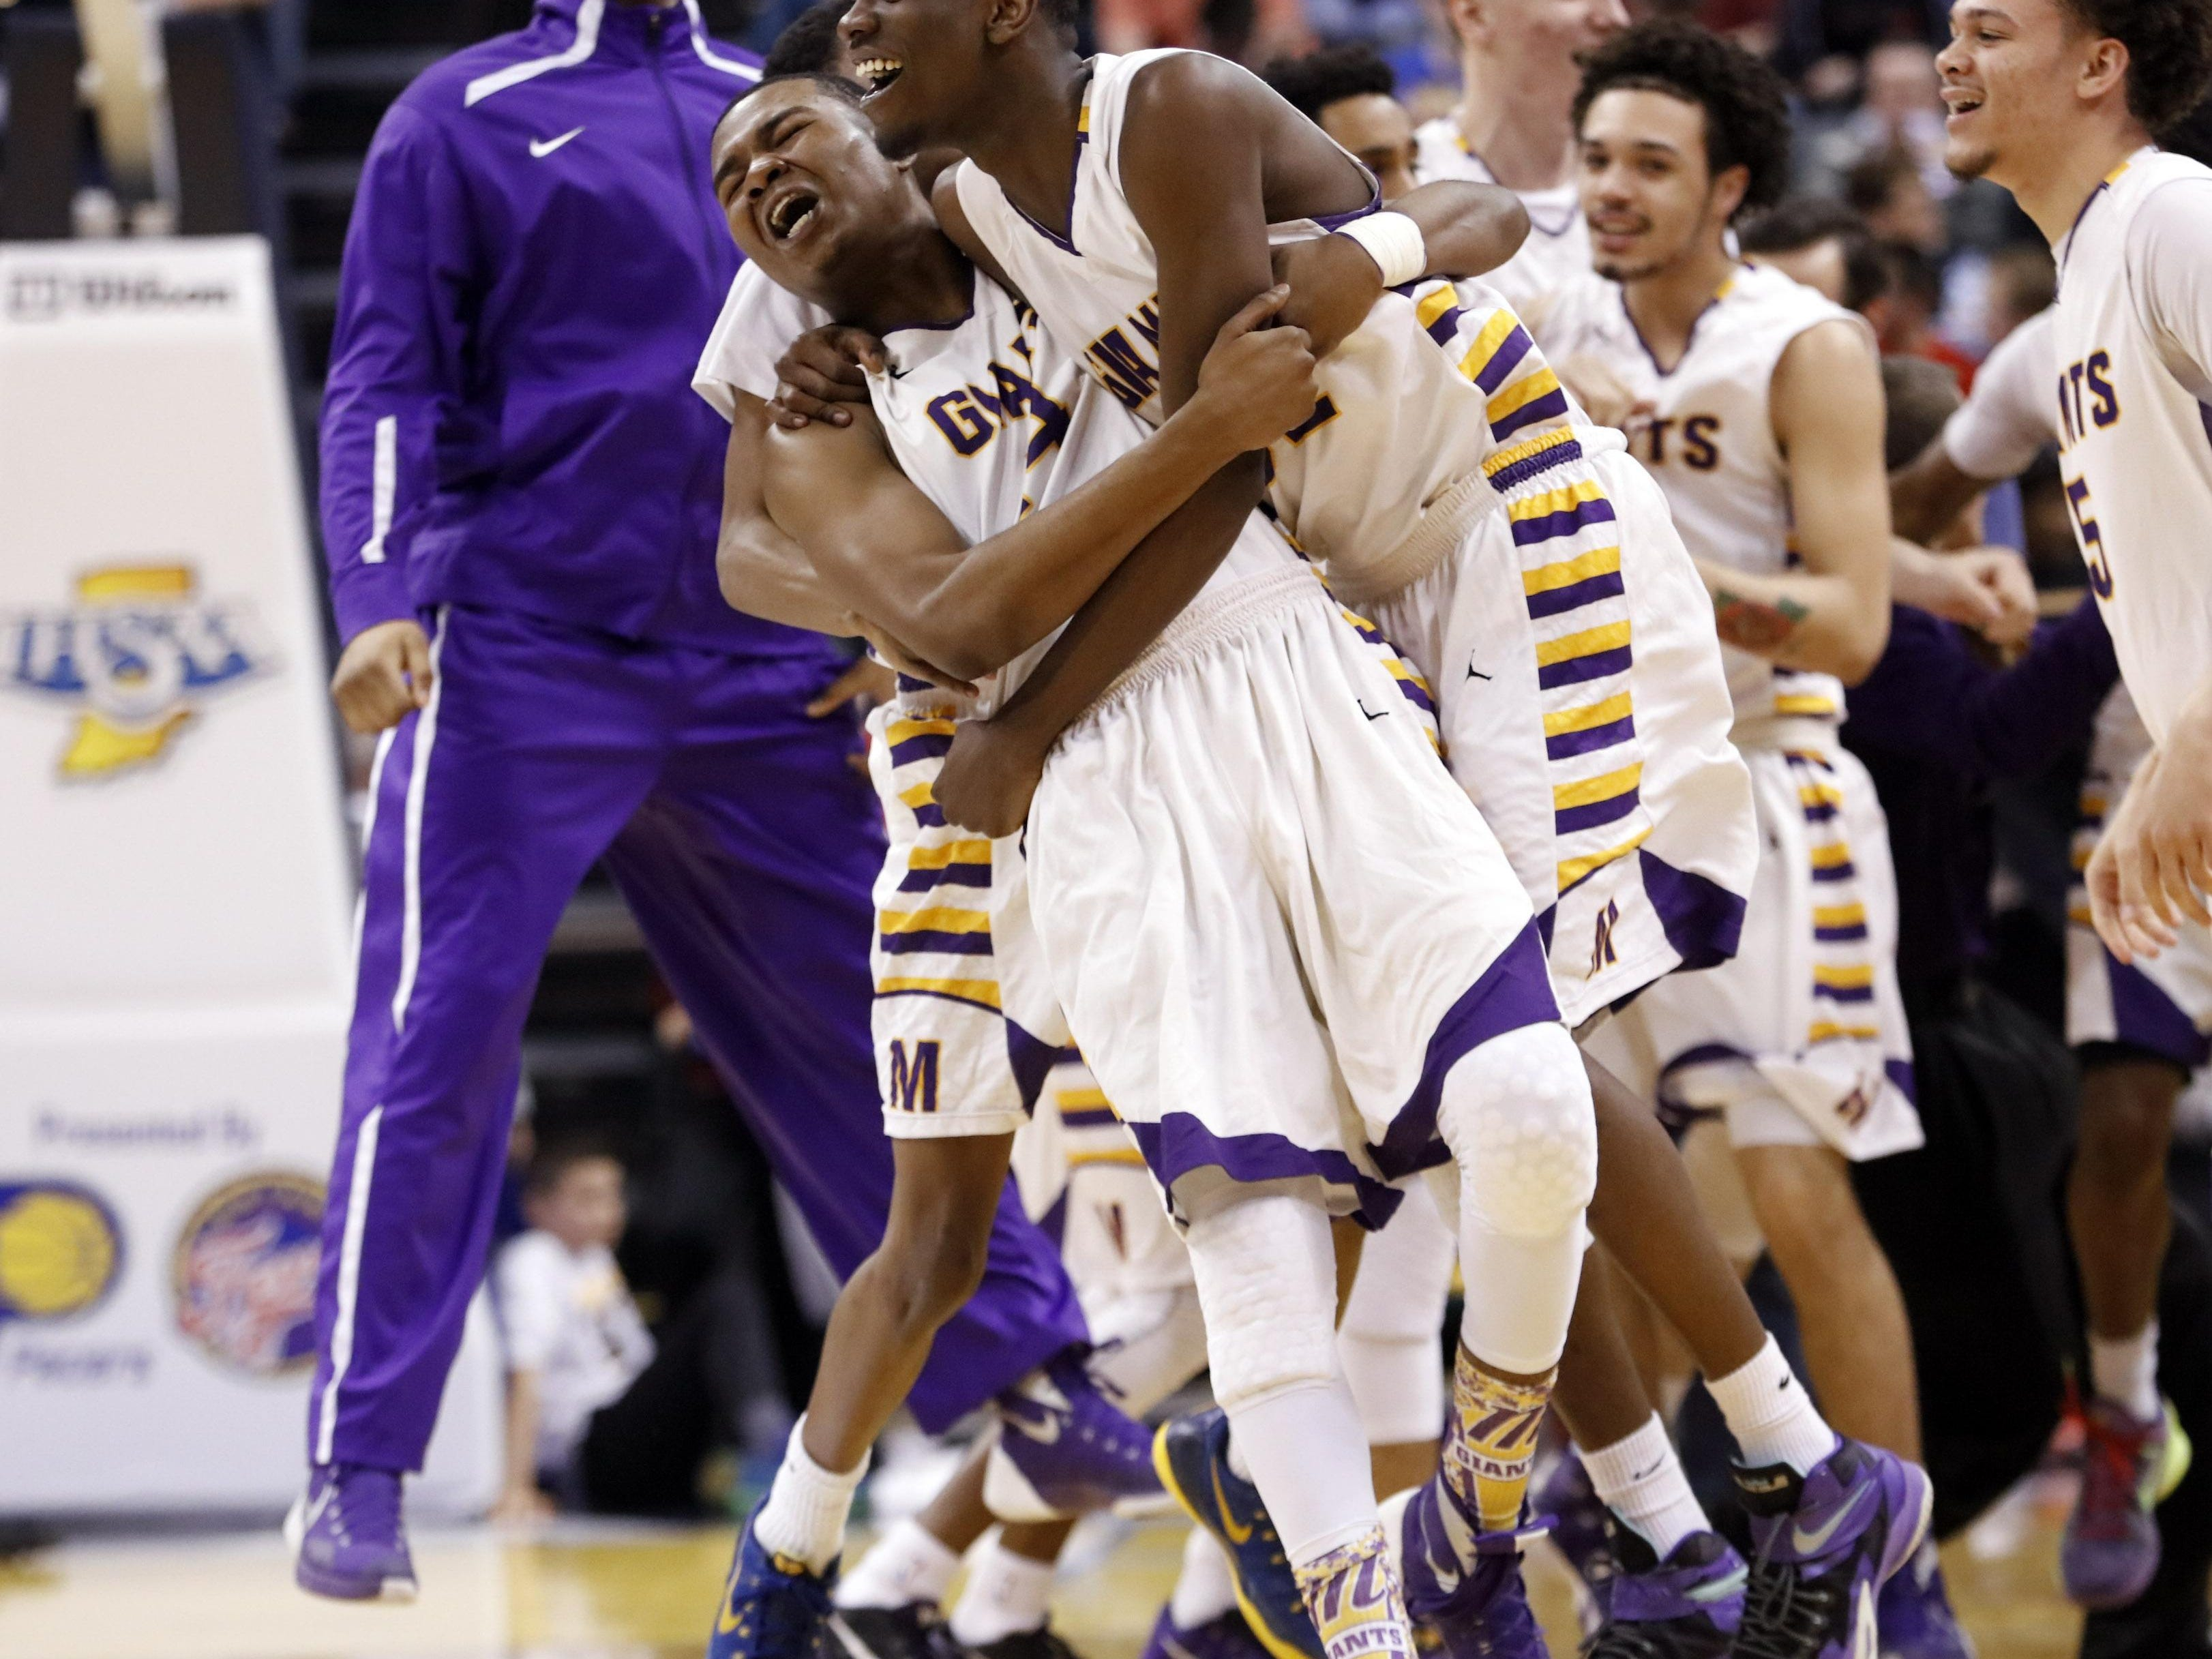 Marion's Jordan Smith, left, and Juswon White celebrate after defeating Evansville Bosse in the Indiana Class 3A IHSAA state championship basketball game in Indianapolis, Saturday, March 26, 2016. Marion won 73-68. (AP Photo/AJ Mast)